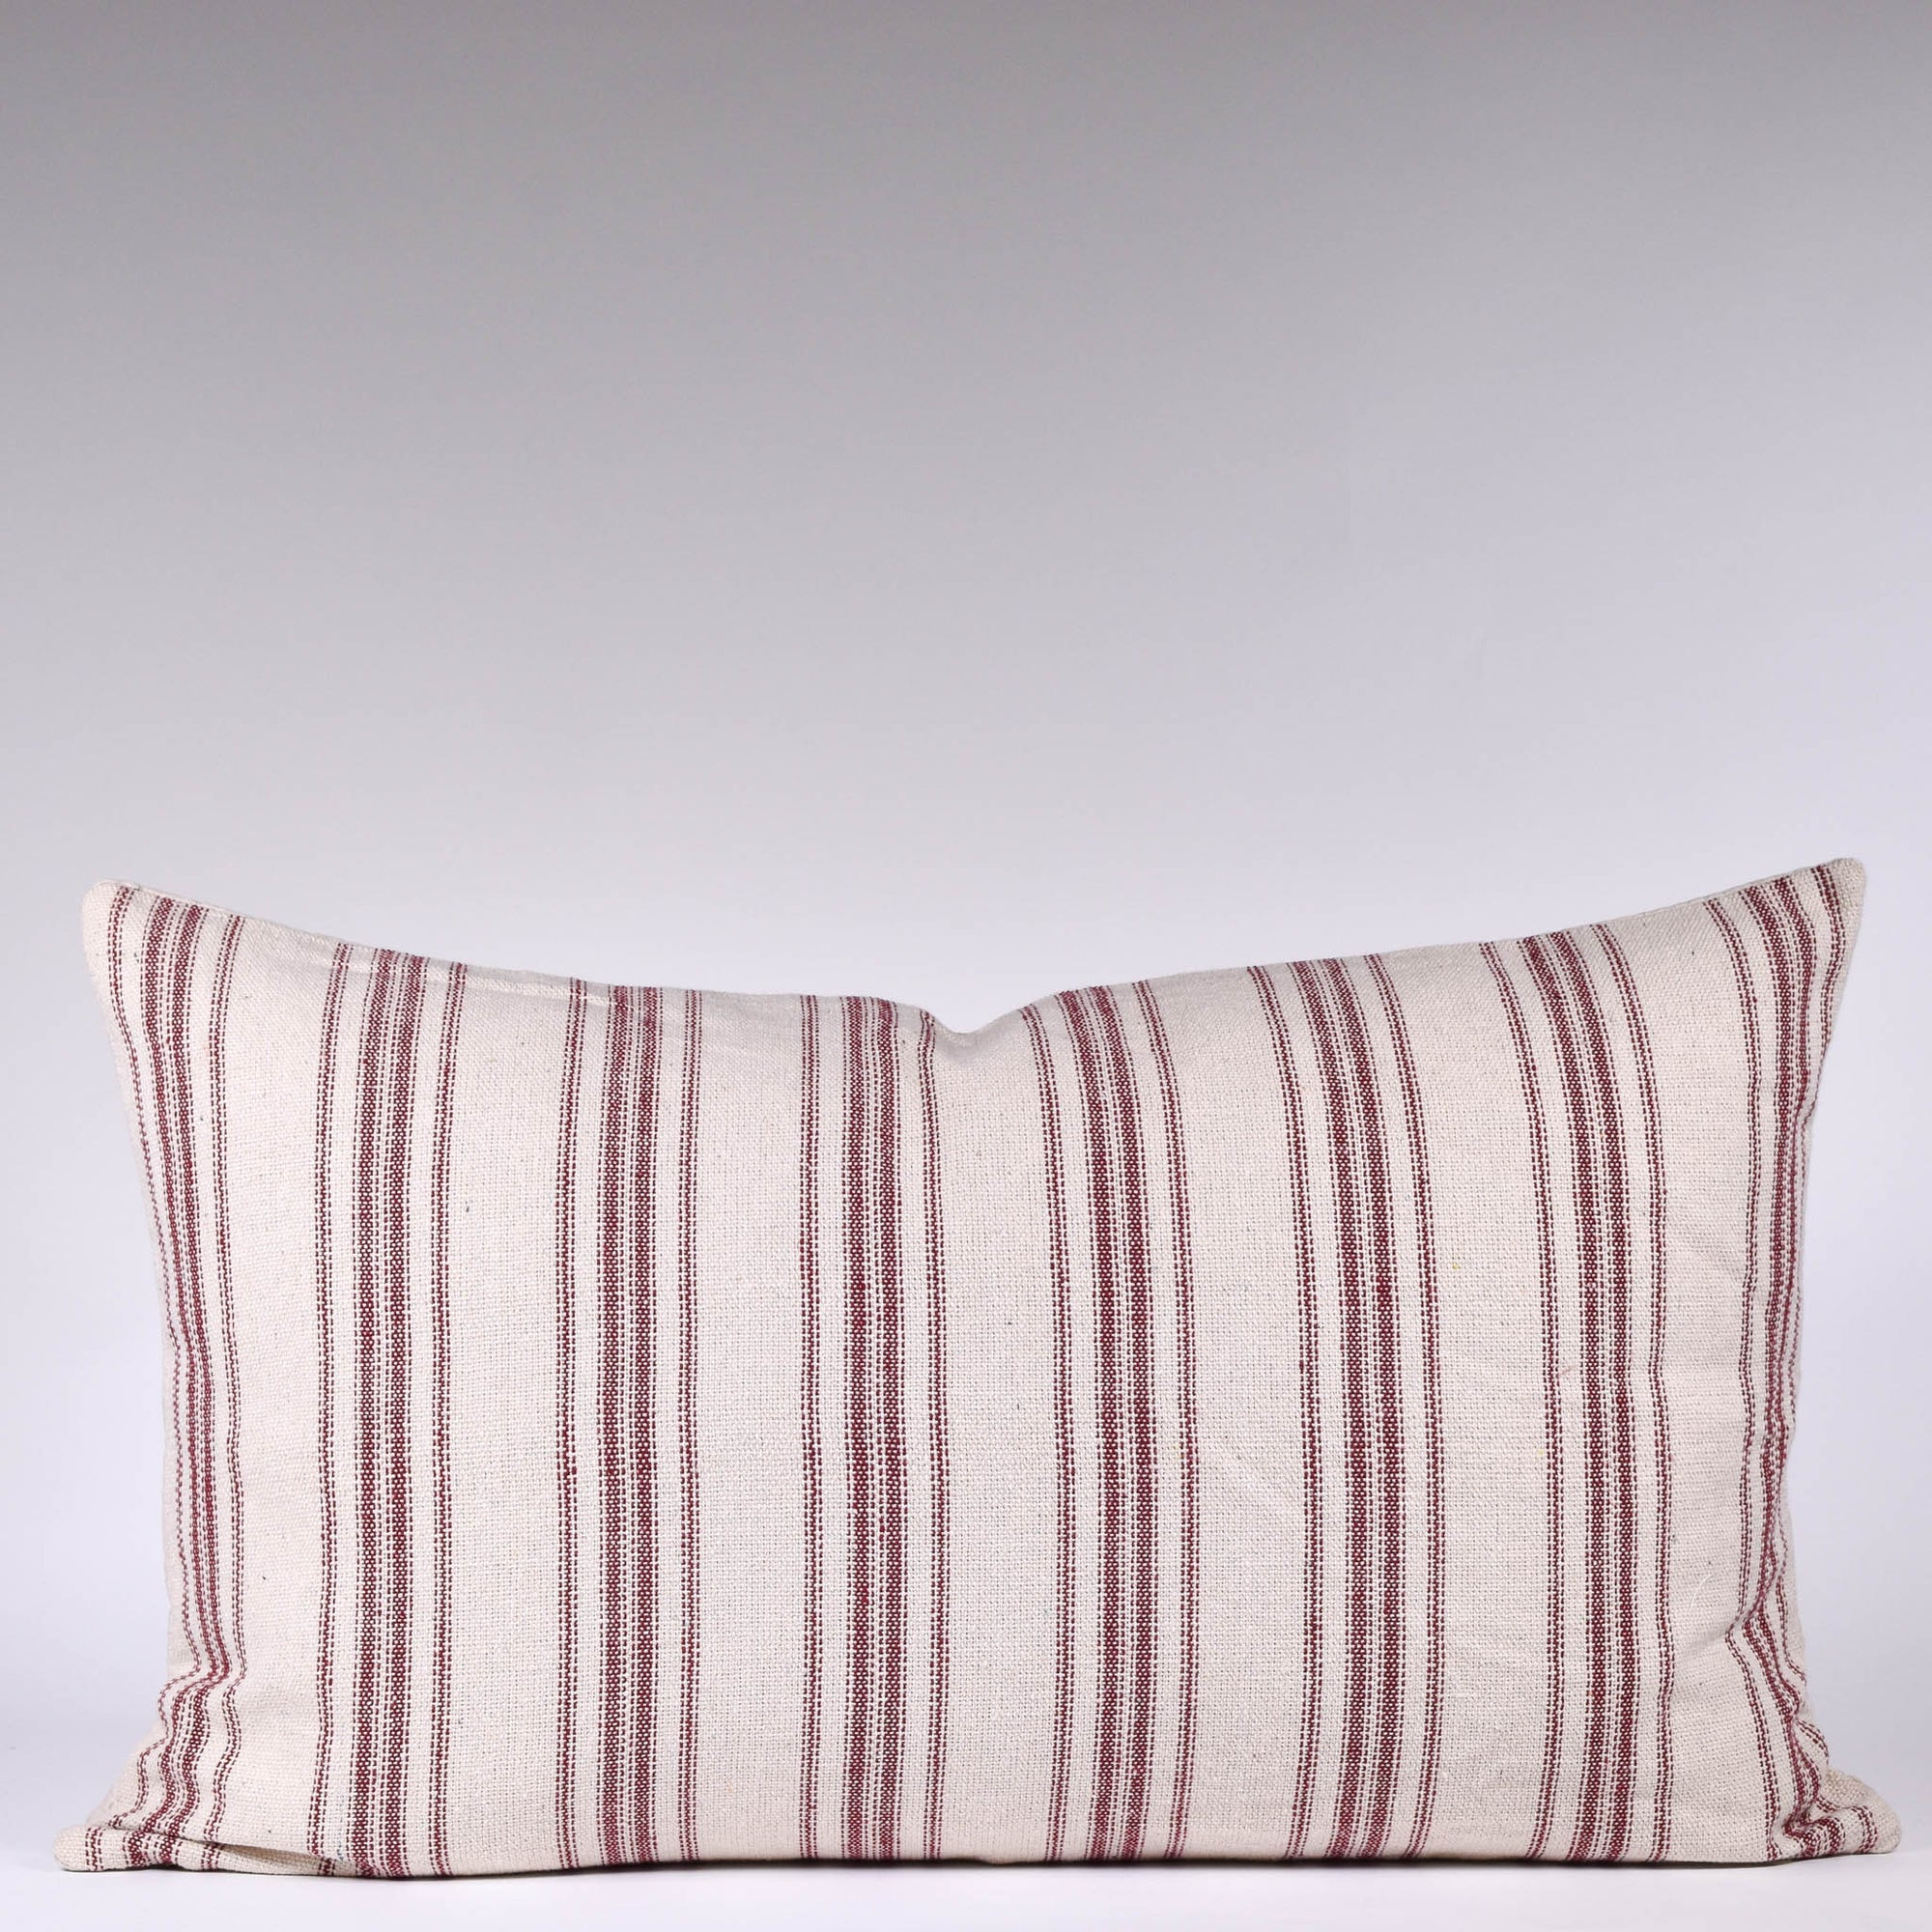 Grain Sack Lumbar Pillow - Rug & Weave